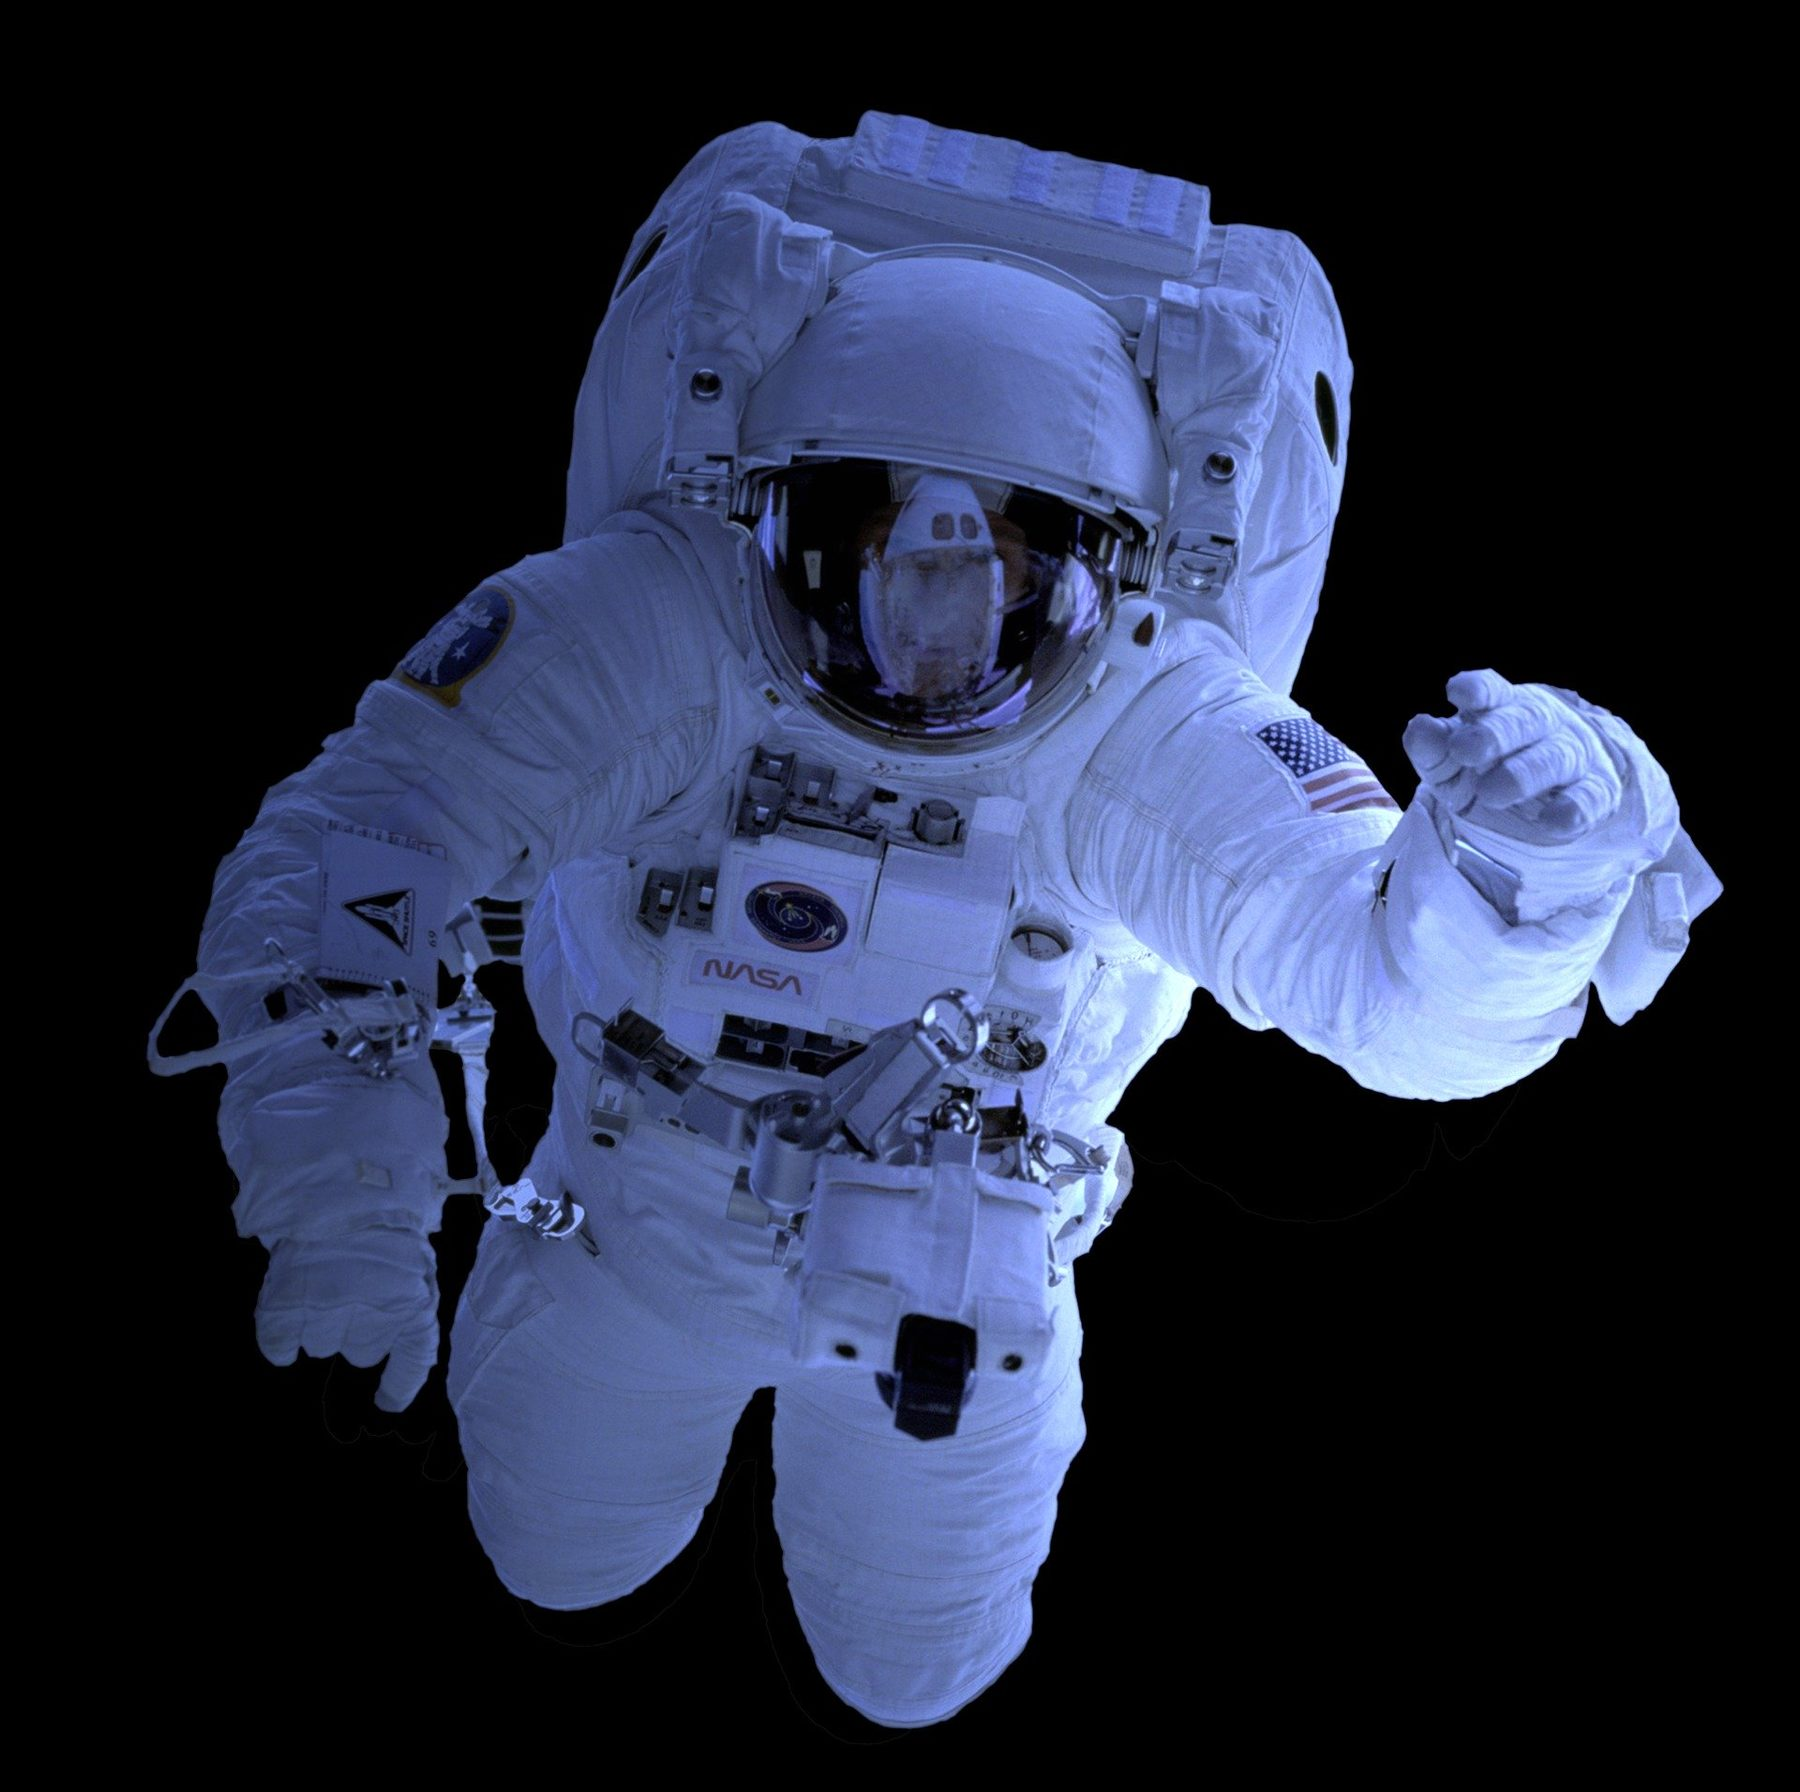 Site Image (Astronaut: NASA, Spacewalk, Spacesuit, Space)